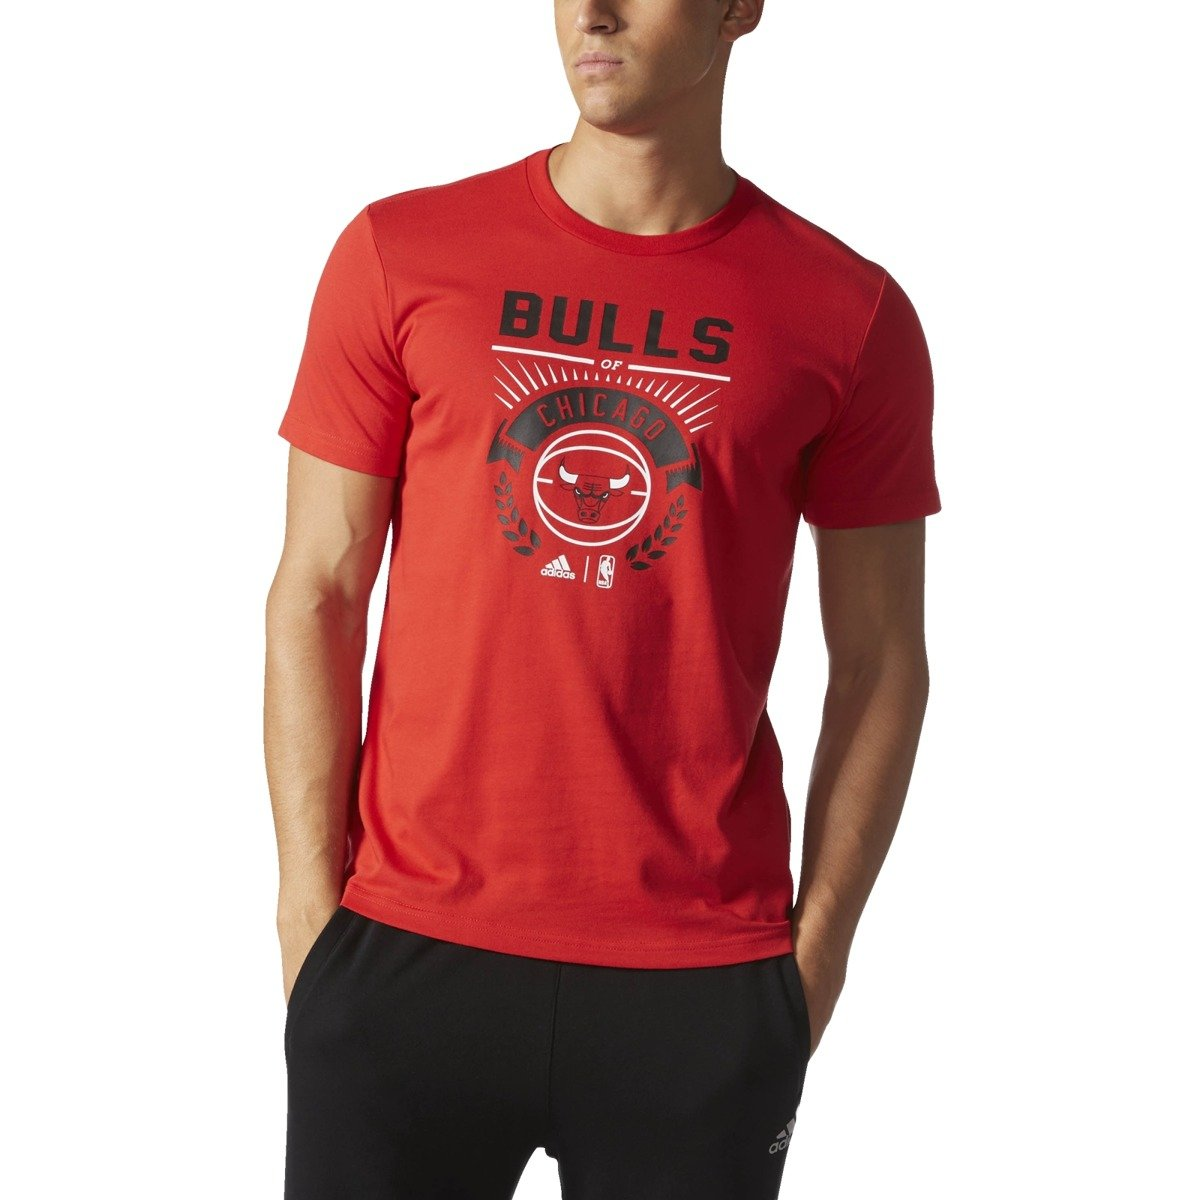 adidas chicago bulls t shirt s96778 basketball. Black Bedroom Furniture Sets. Home Design Ideas